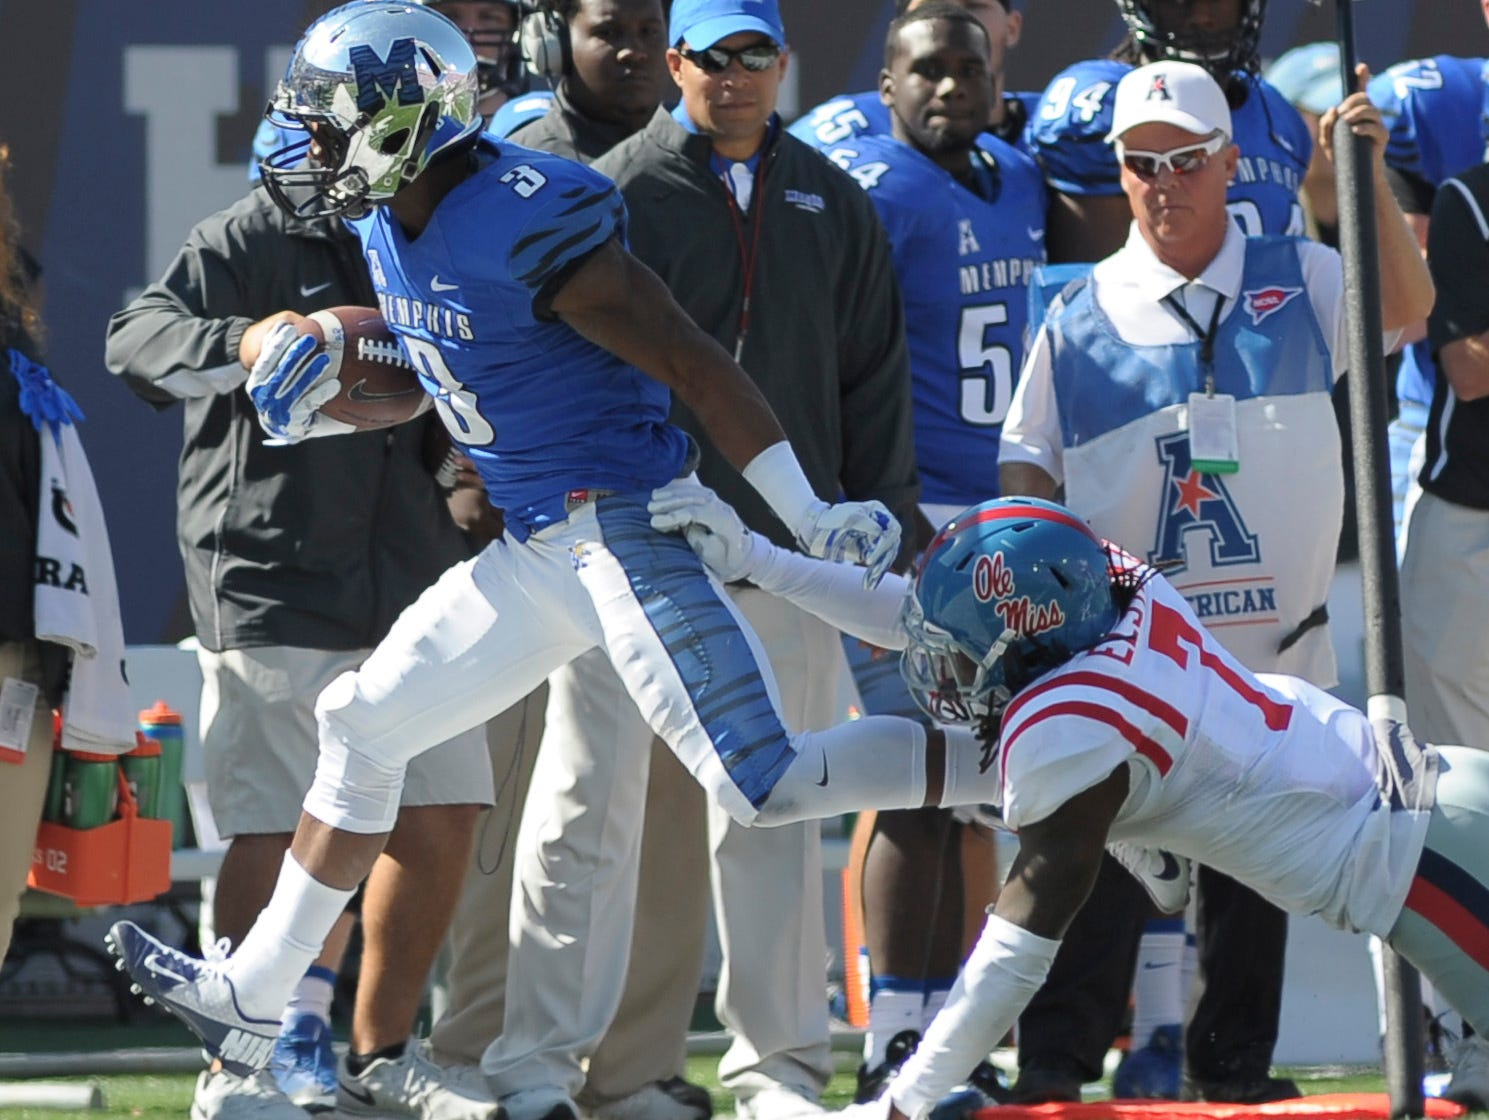 The Rebels are changing their practice plans in an effort to improve their poor tackling.